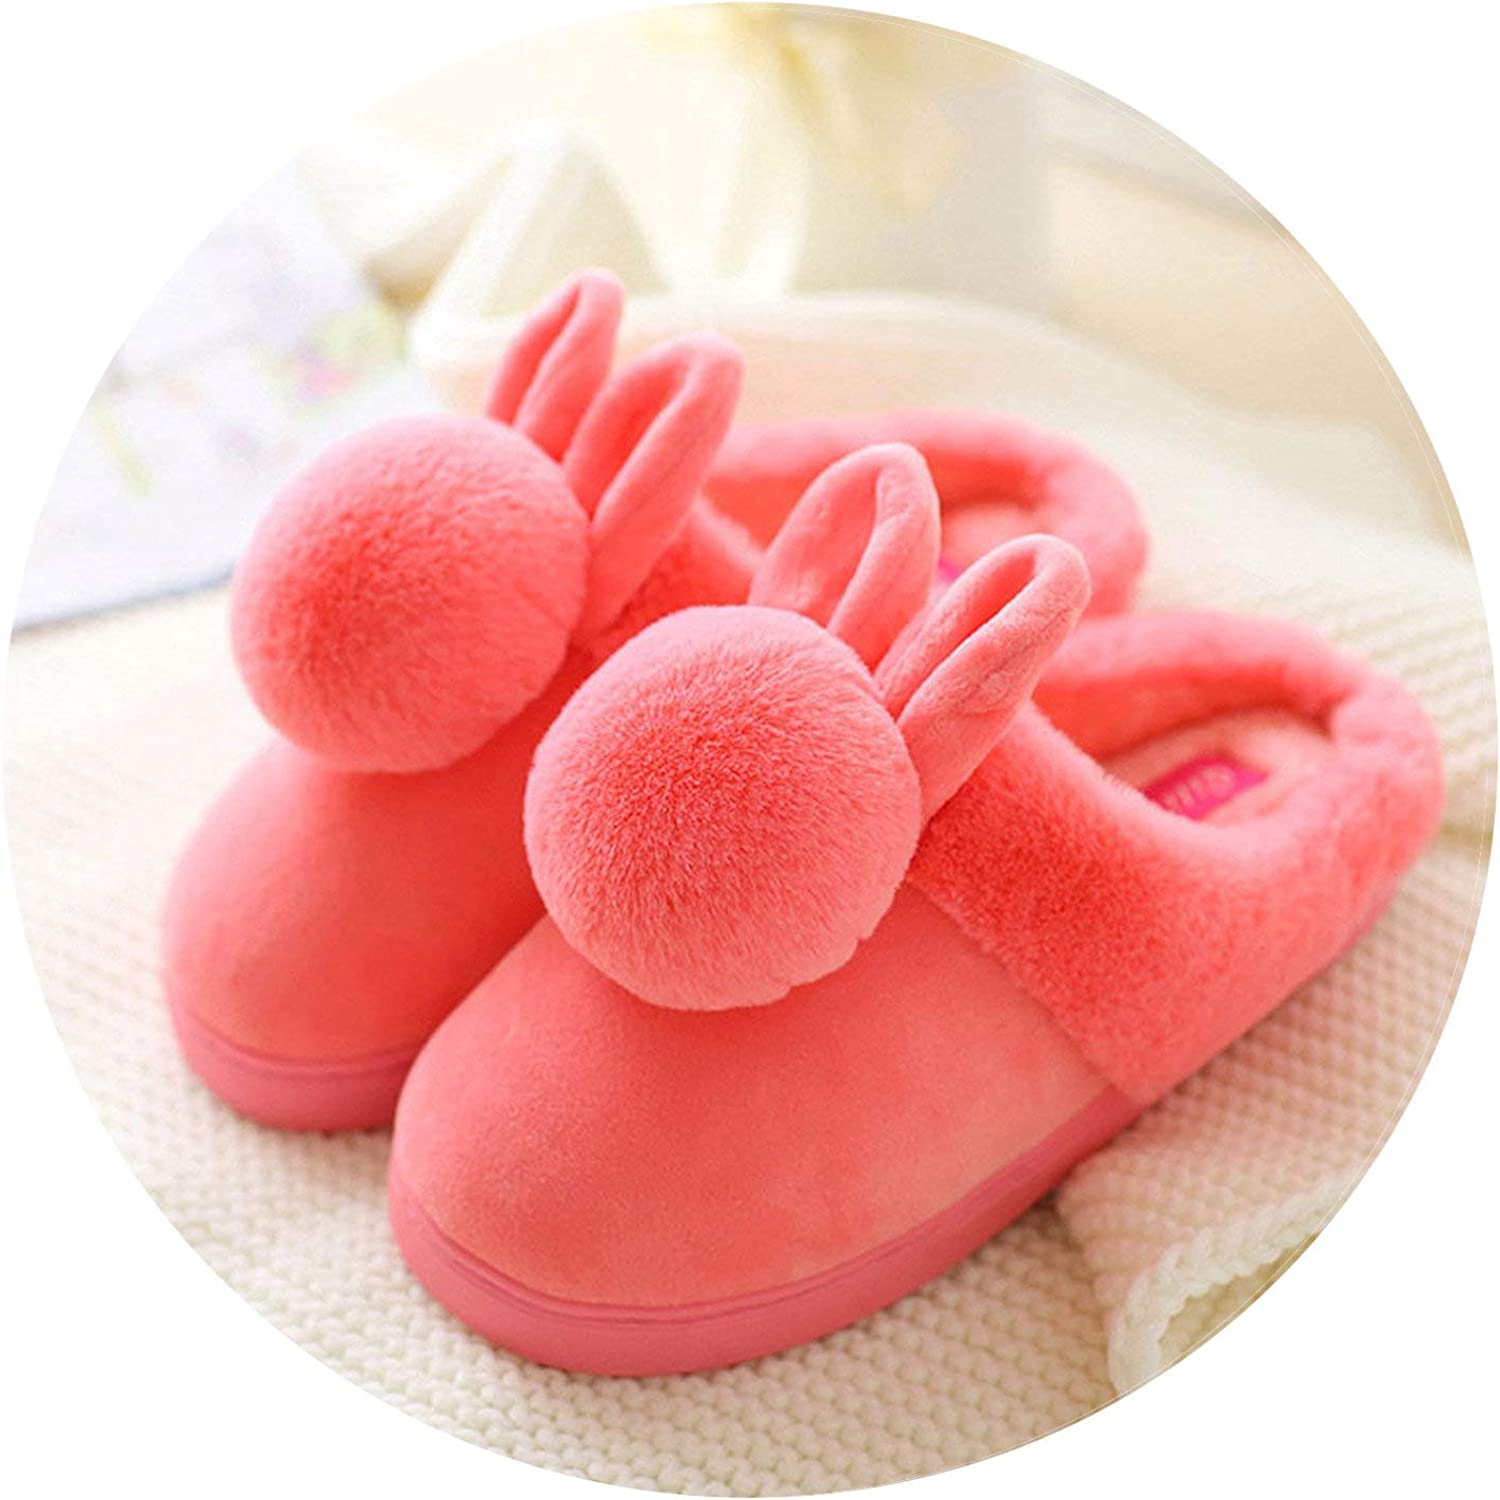 Cotton Slippers in Autumn Winter All Inside Outside The House Anti-Skid House Warm Thick-Rooted wome